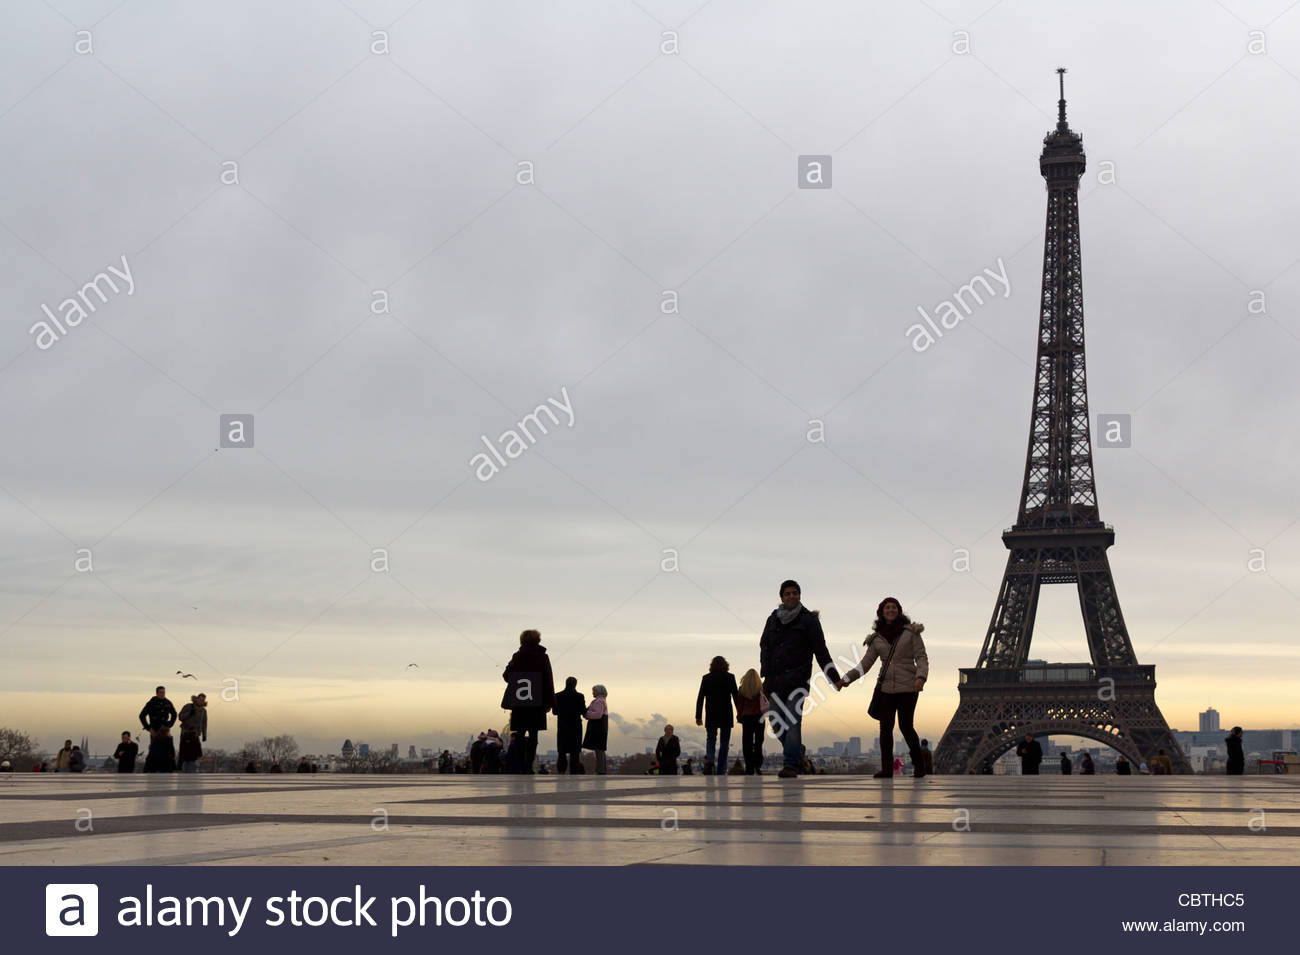 Place du Trocadro with Eiffel Tower in background Paris France 1300x955